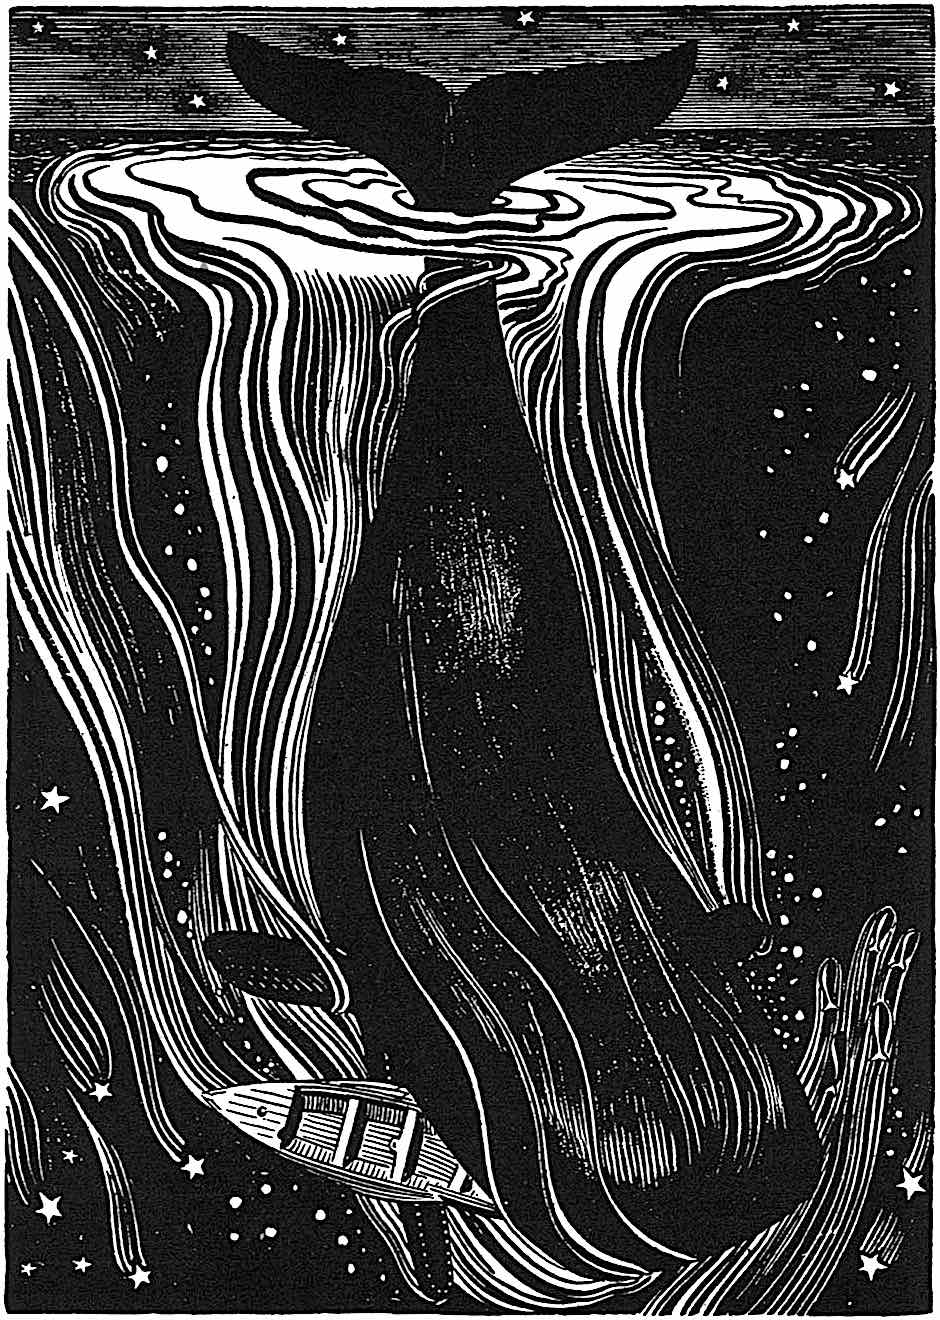 a Rockwell Kent illustration for the book 'Moby Dick'